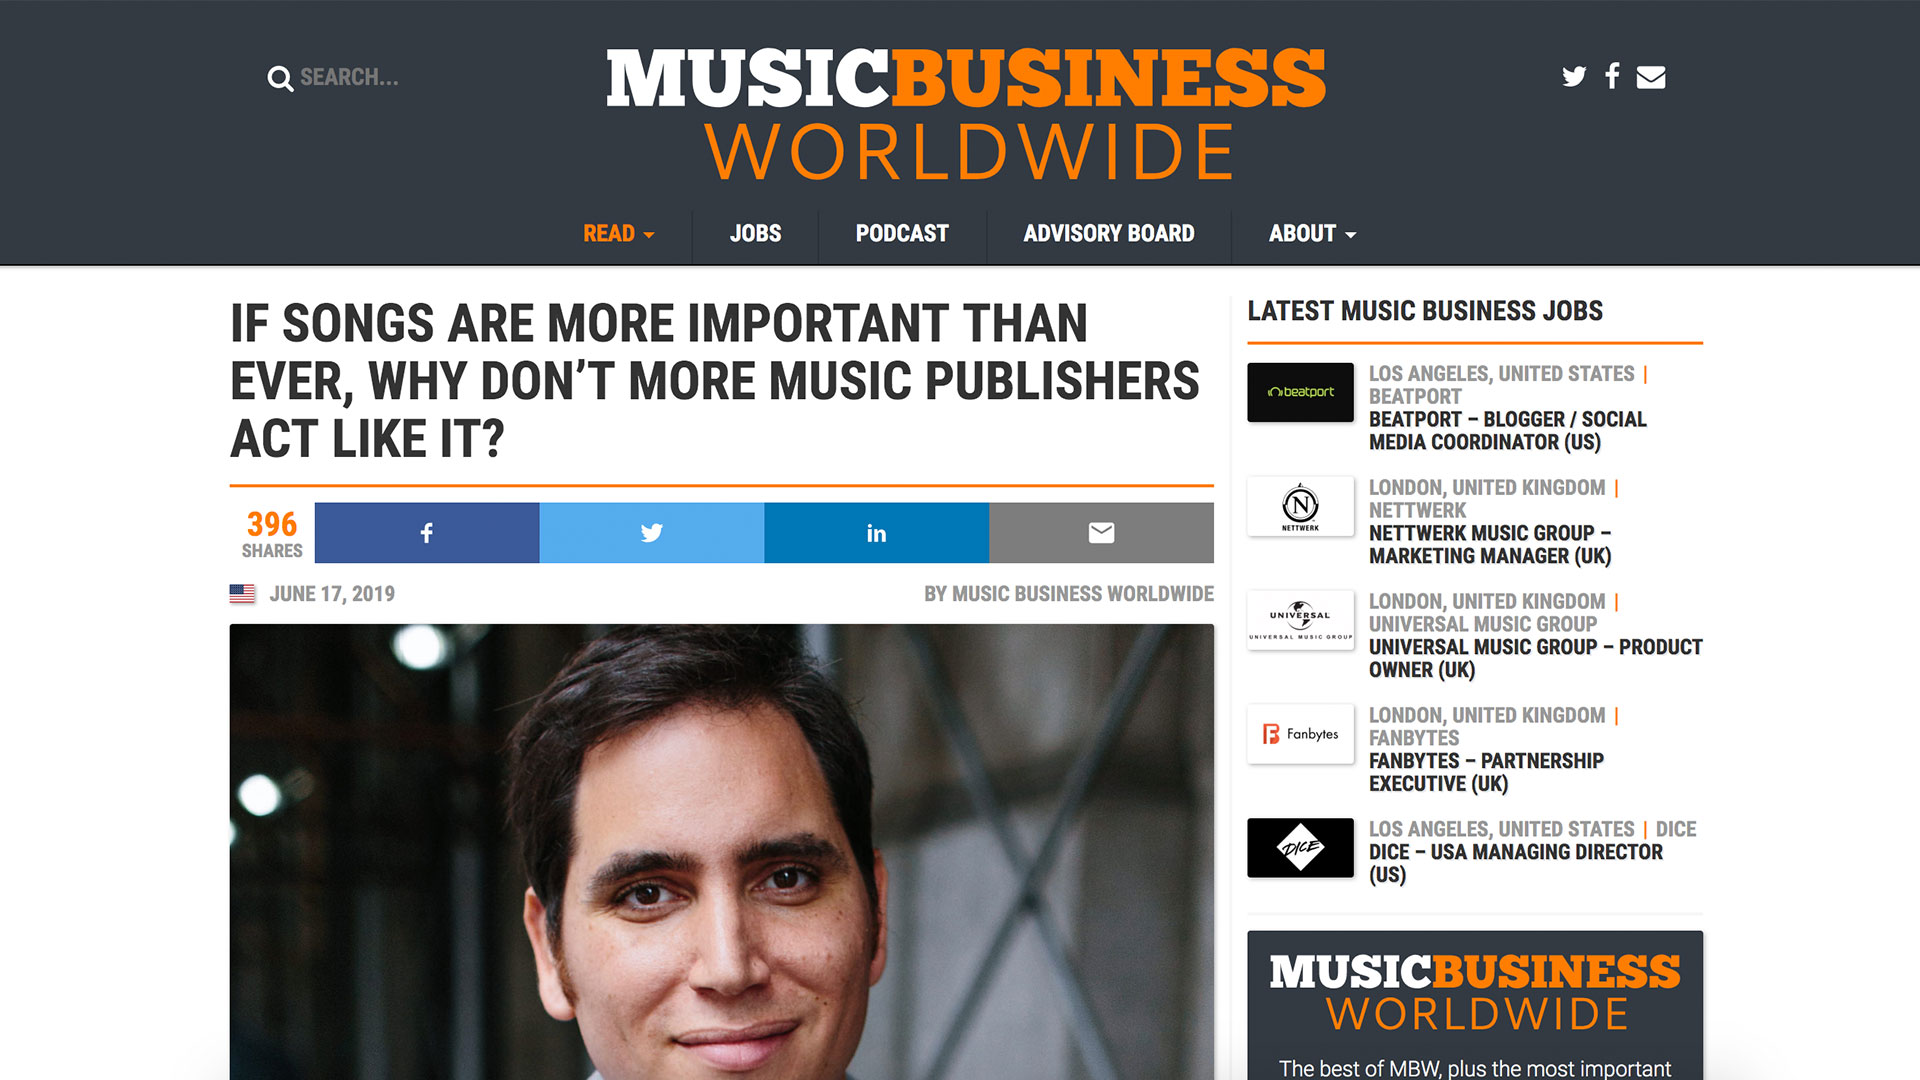 Fairness Rocks News IF SONGS ARE MORE IMPORTANT THAN EVER, WHY DON'T MORE MUSIC PUBLISHERS ACT LIKE IT?